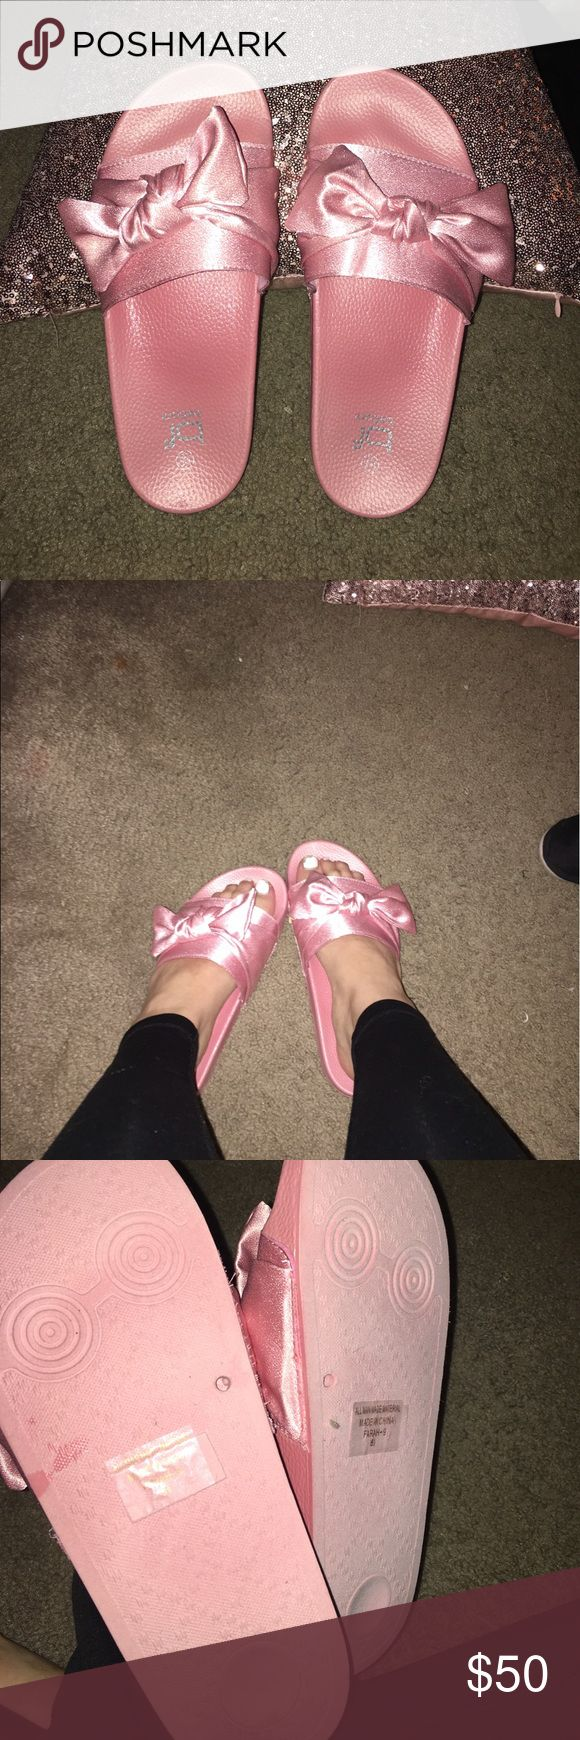 Satin pink bow slides Got from a boutique because I missed the Rihanna slides :( but very cute nonetheless, amazing thick quality puma for exposure Puma Shoes Sandals